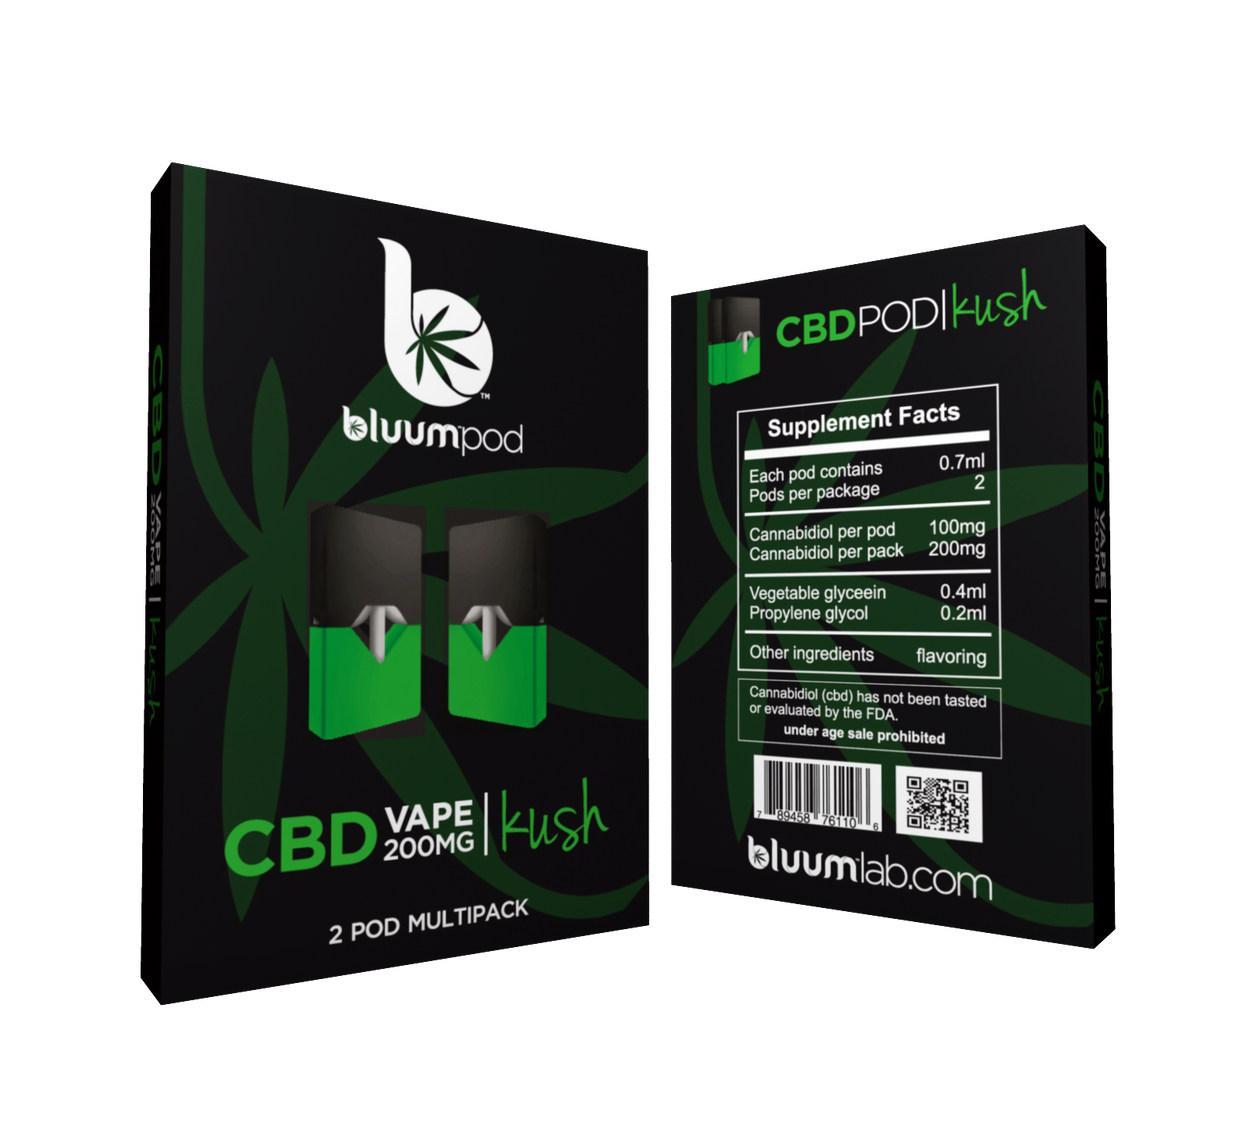 Bluumlab - CBD Pod Cartridge (2pc/pk) - Have A Nice Day CBD